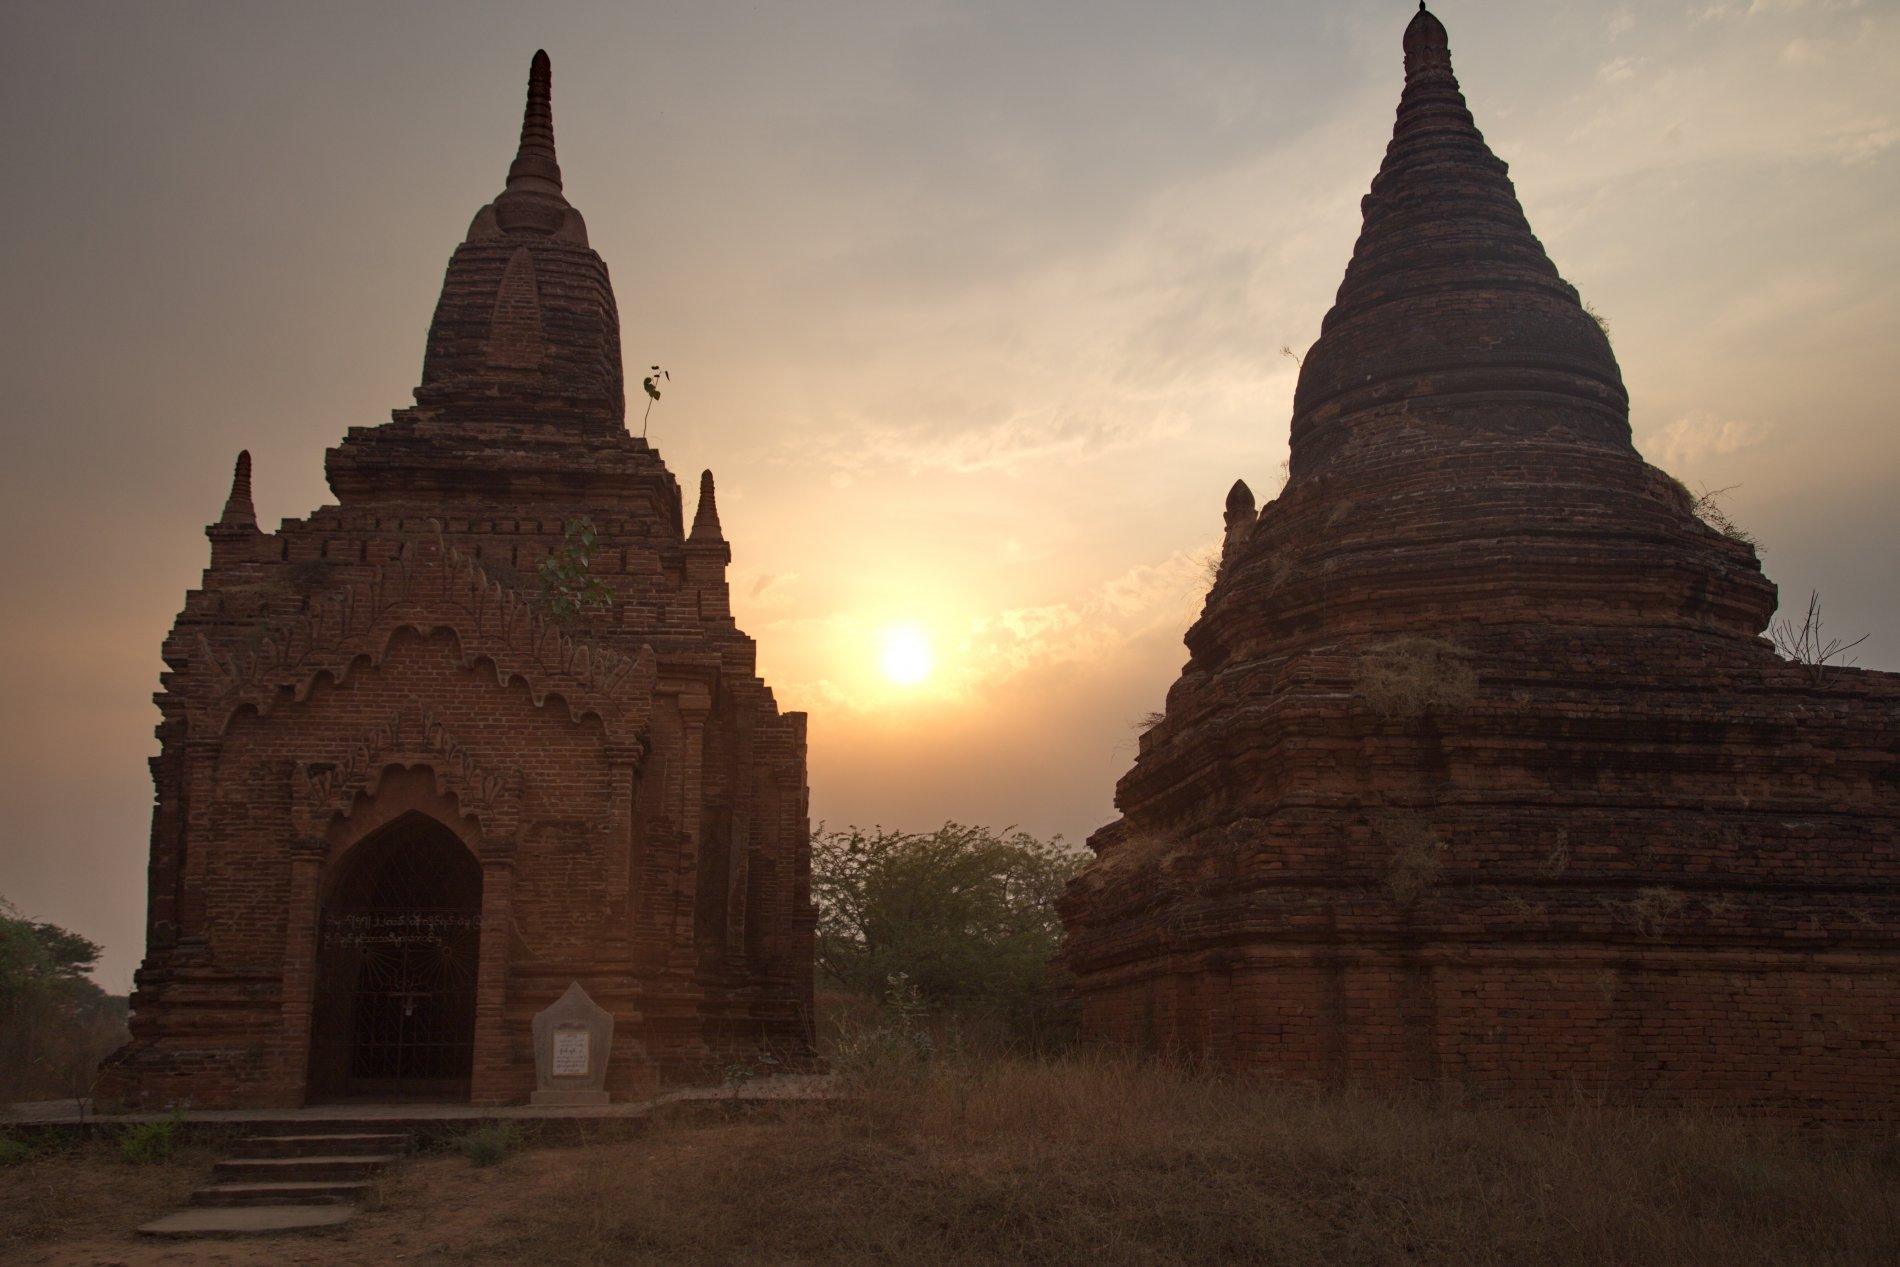 Bagan_173.jpg-commment